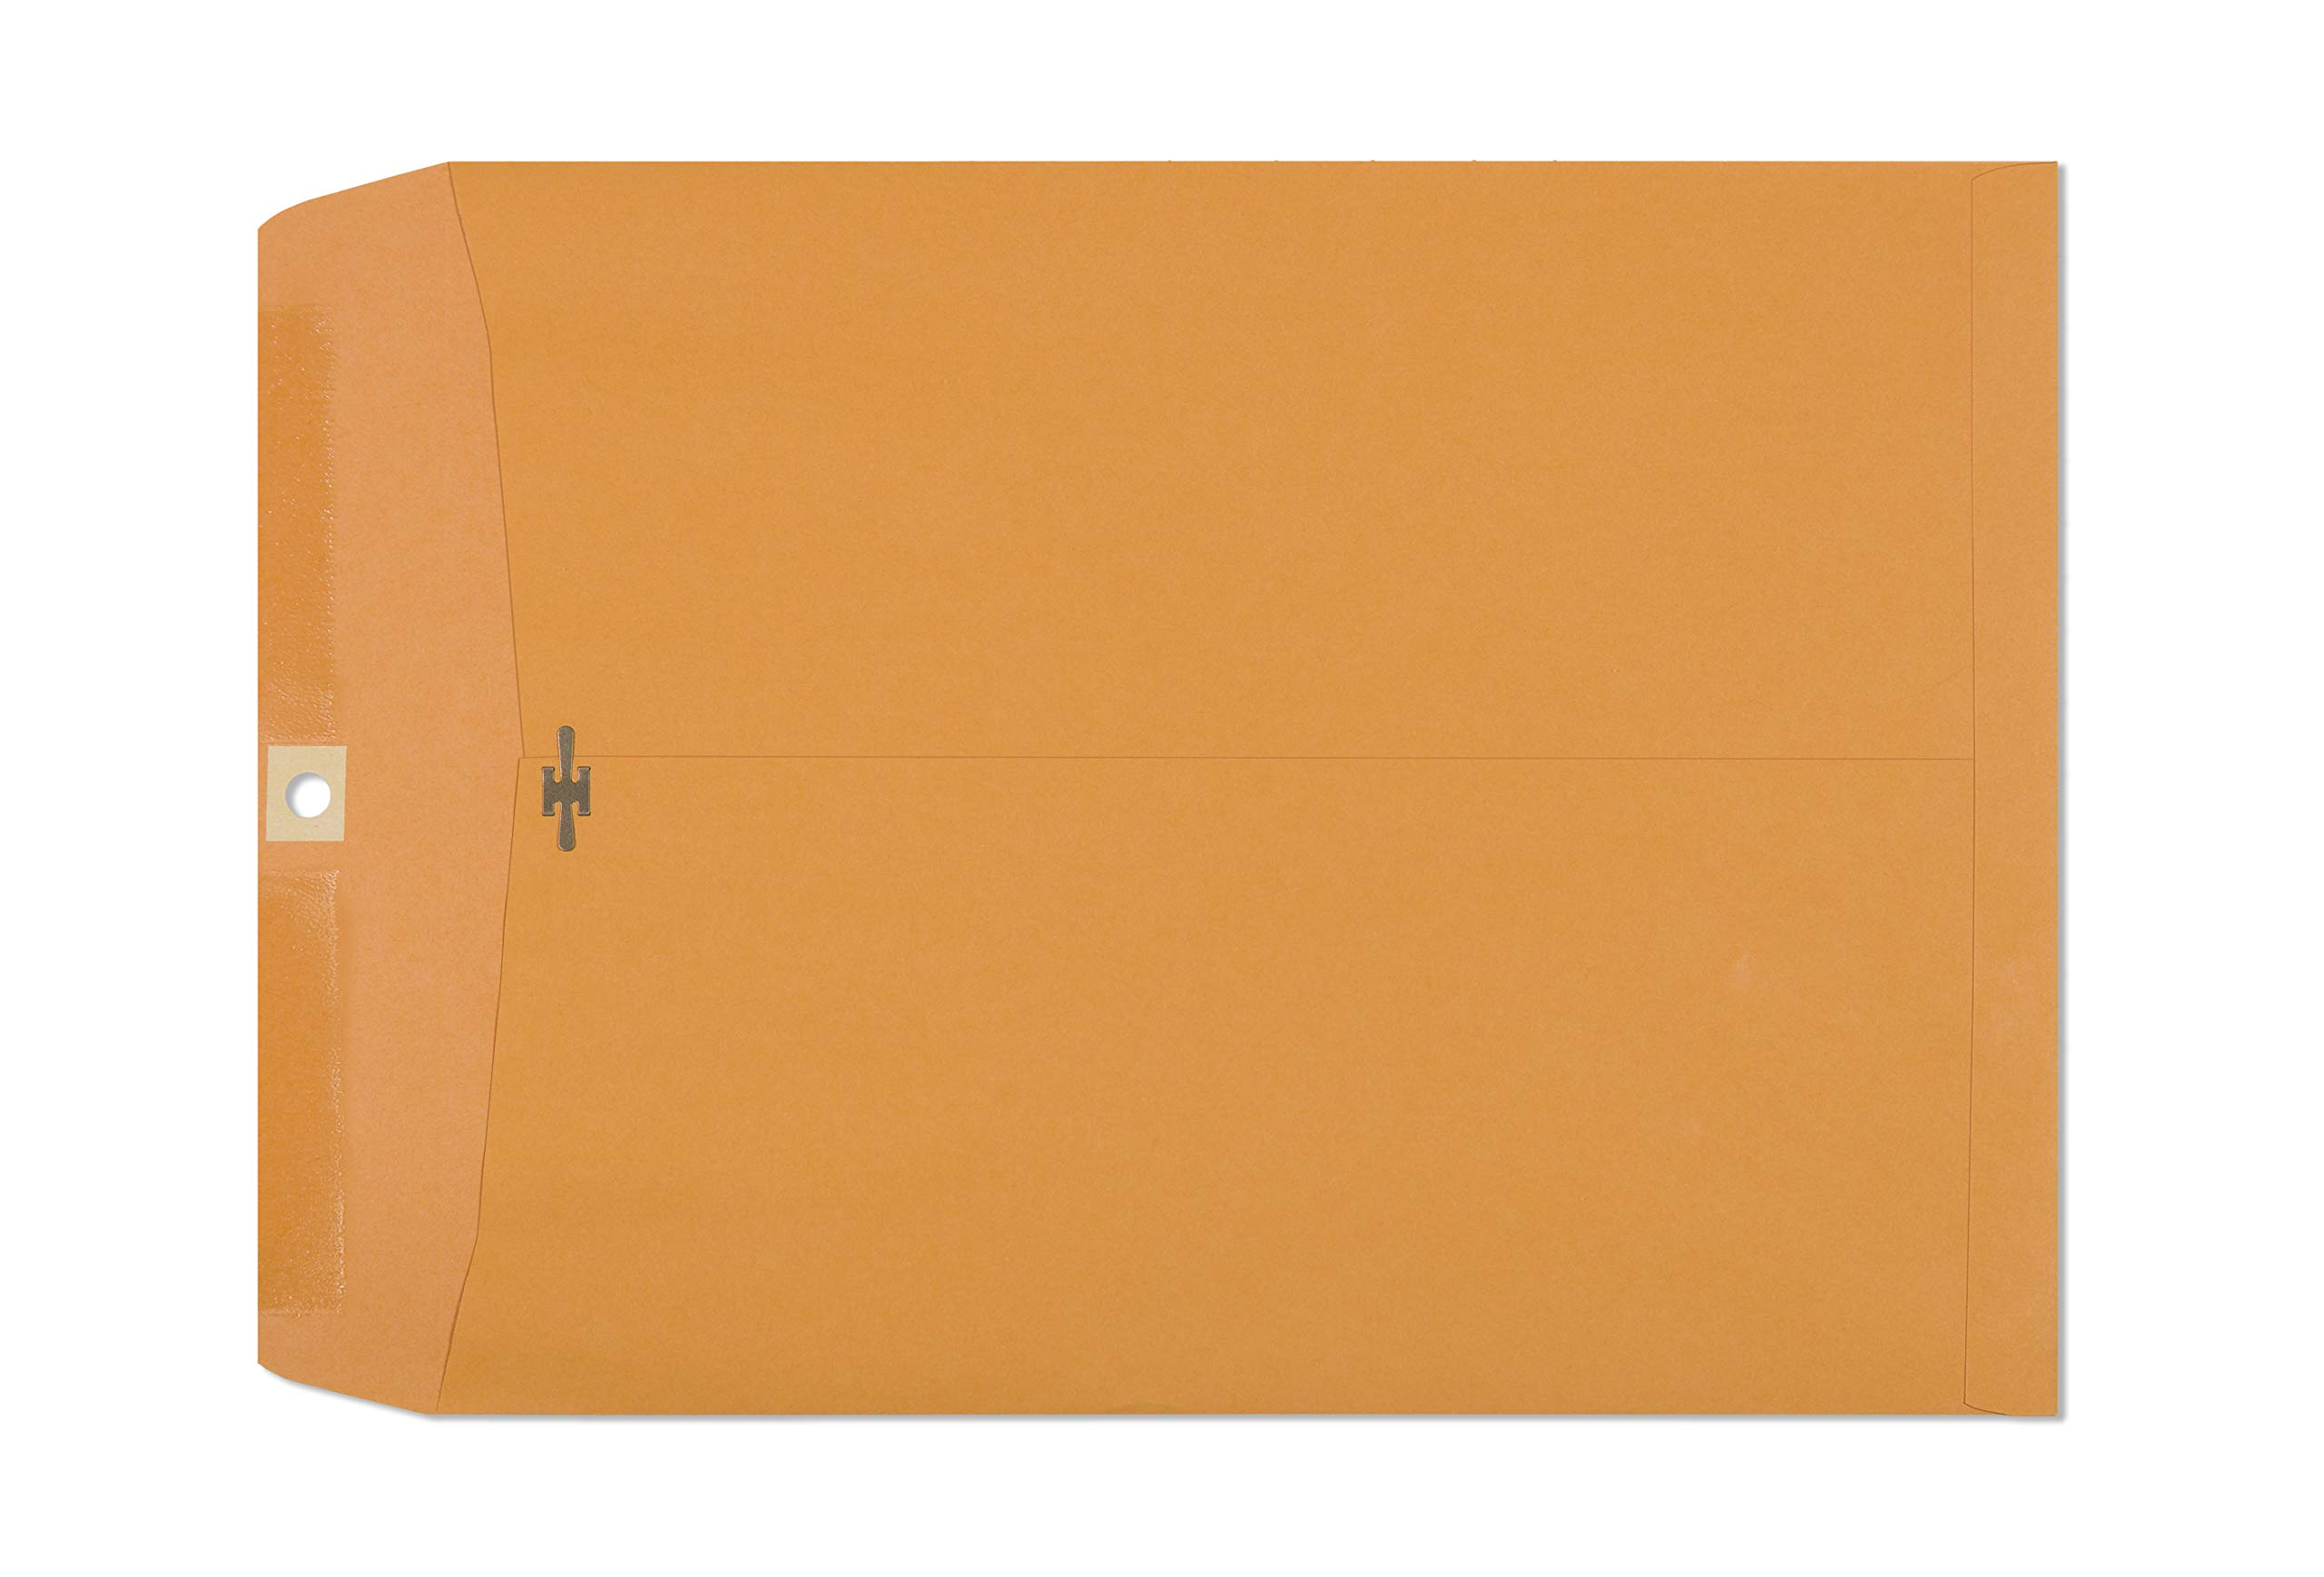 Clasp Envelopes – 10x13 inch Brown Kraft Catalog Envelopes with Clasp Closure & Gummed Seal – 28lb Heavyweight Paper Envelopes for Home, Office, Business, Legal or School 30 Pack 10x13, Brown Kraft